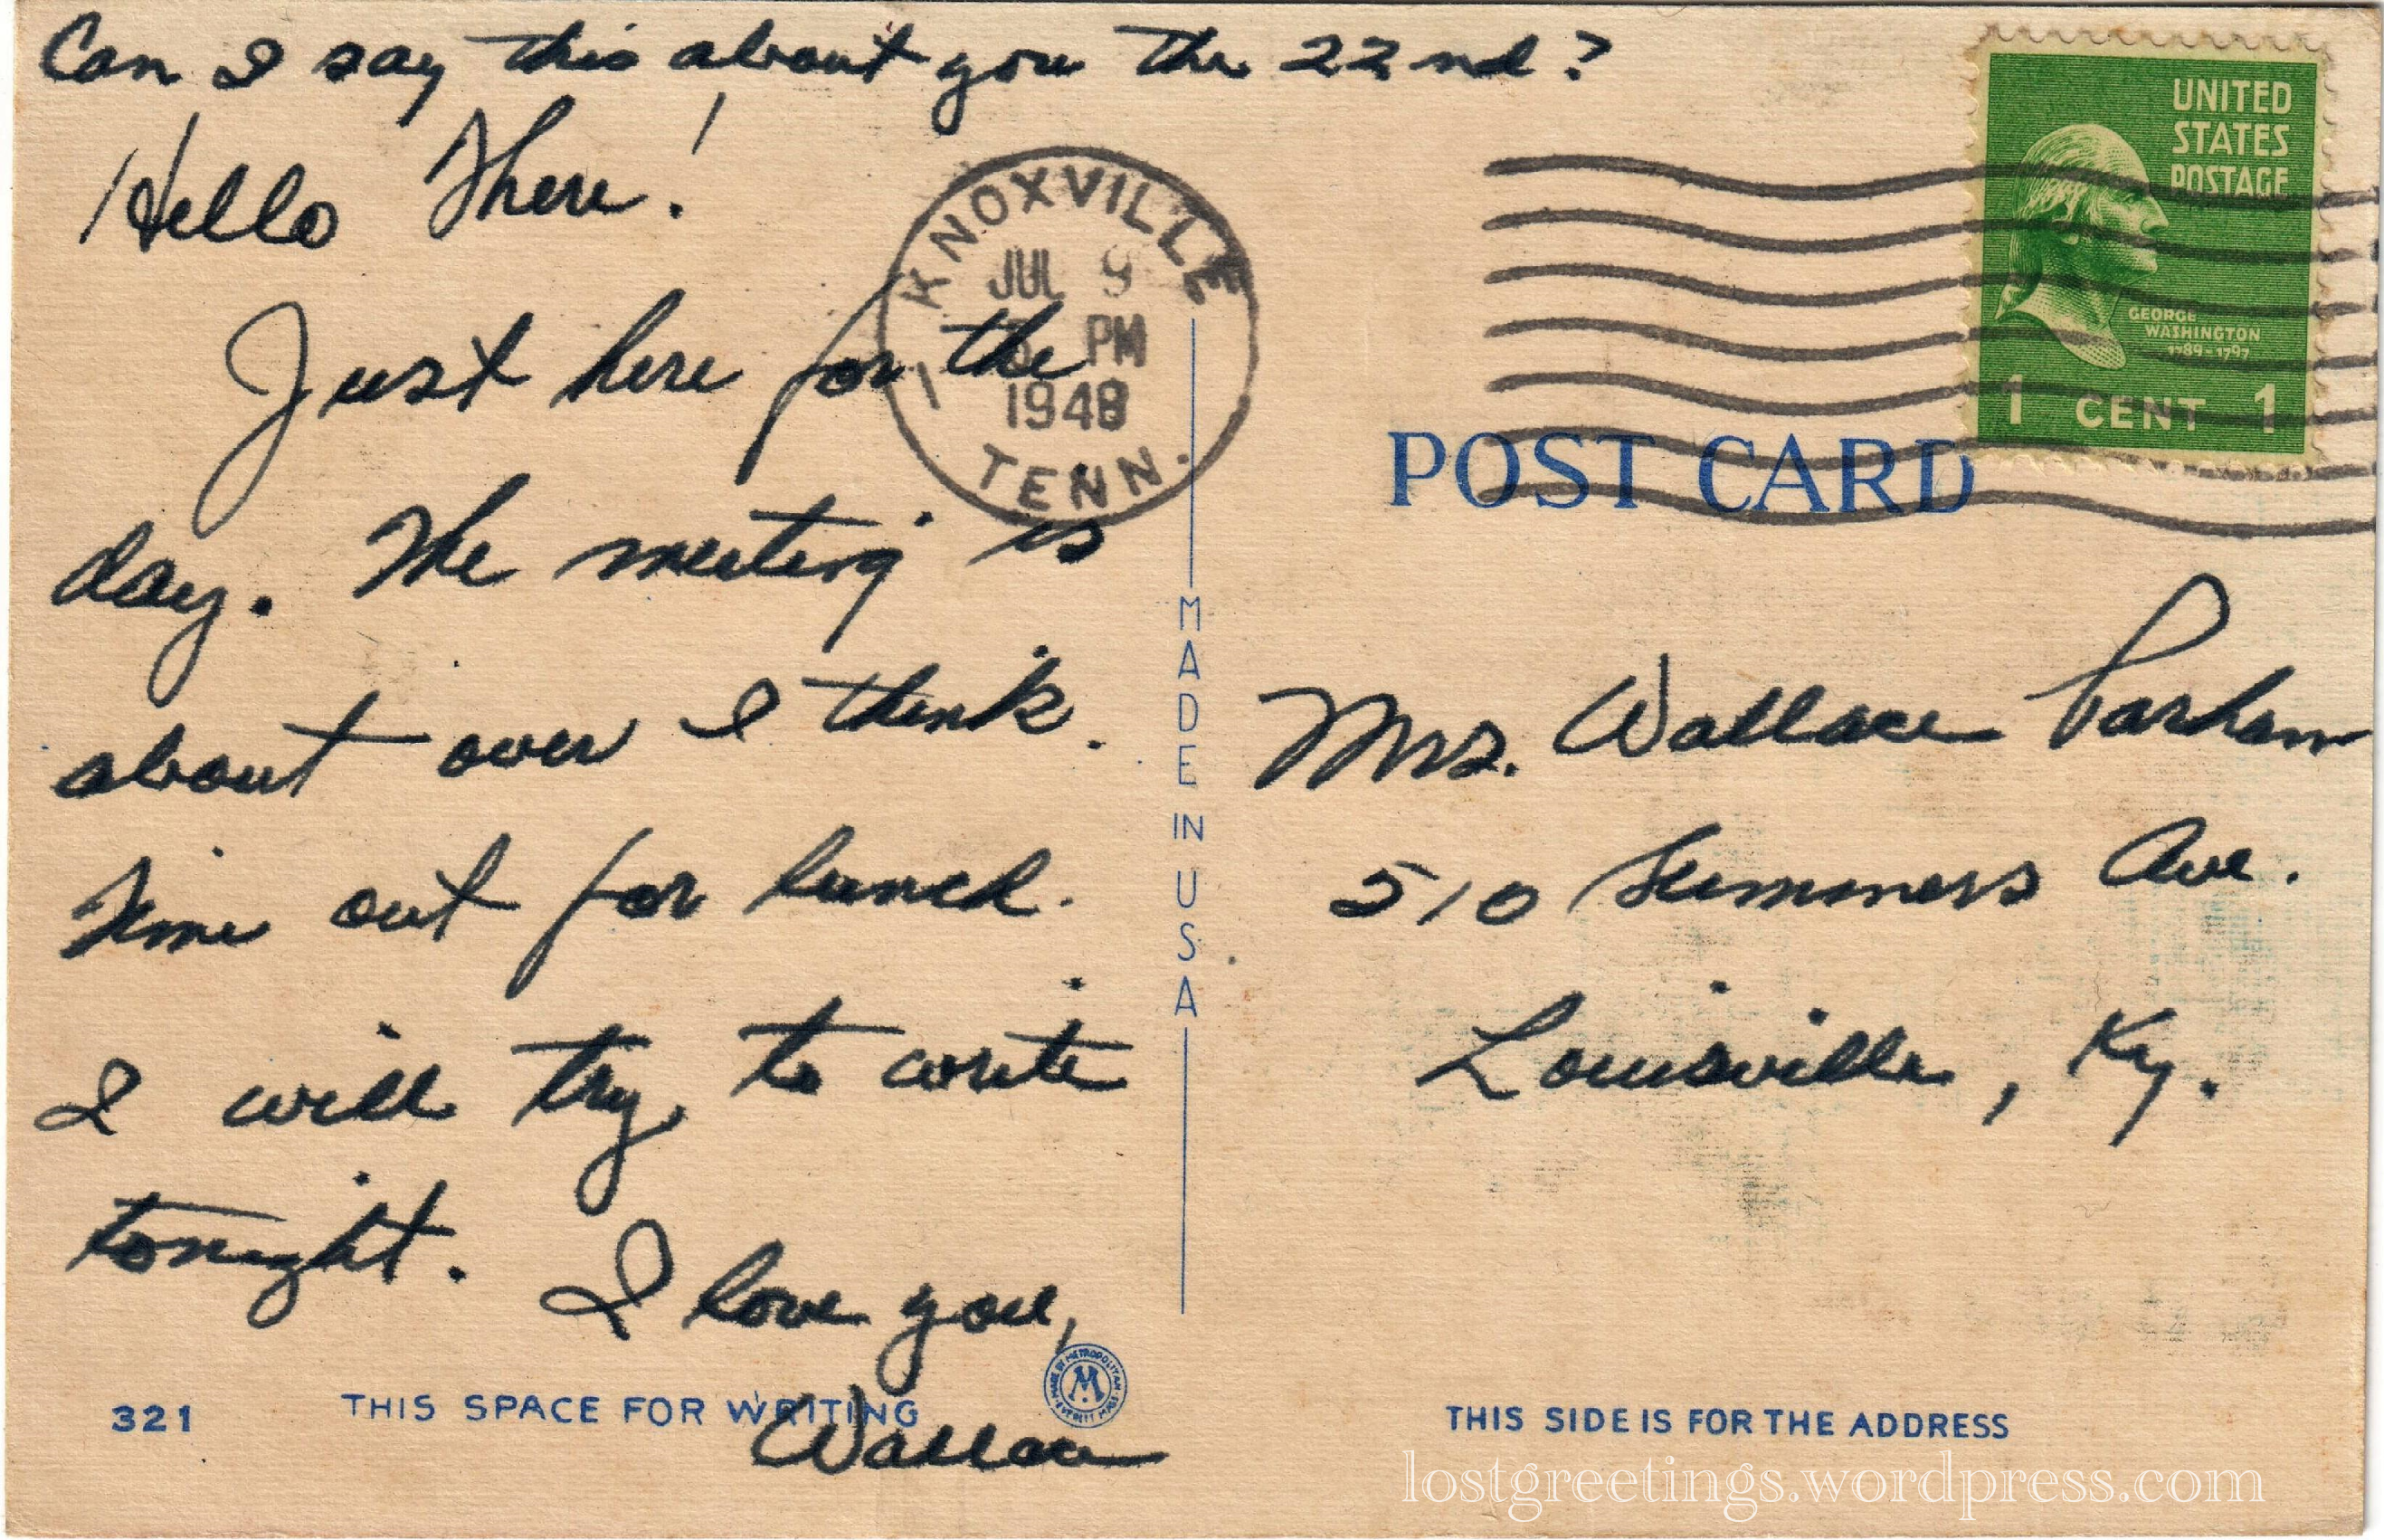 1948 Comic Postcard message - Knoxville, Tennessee lg